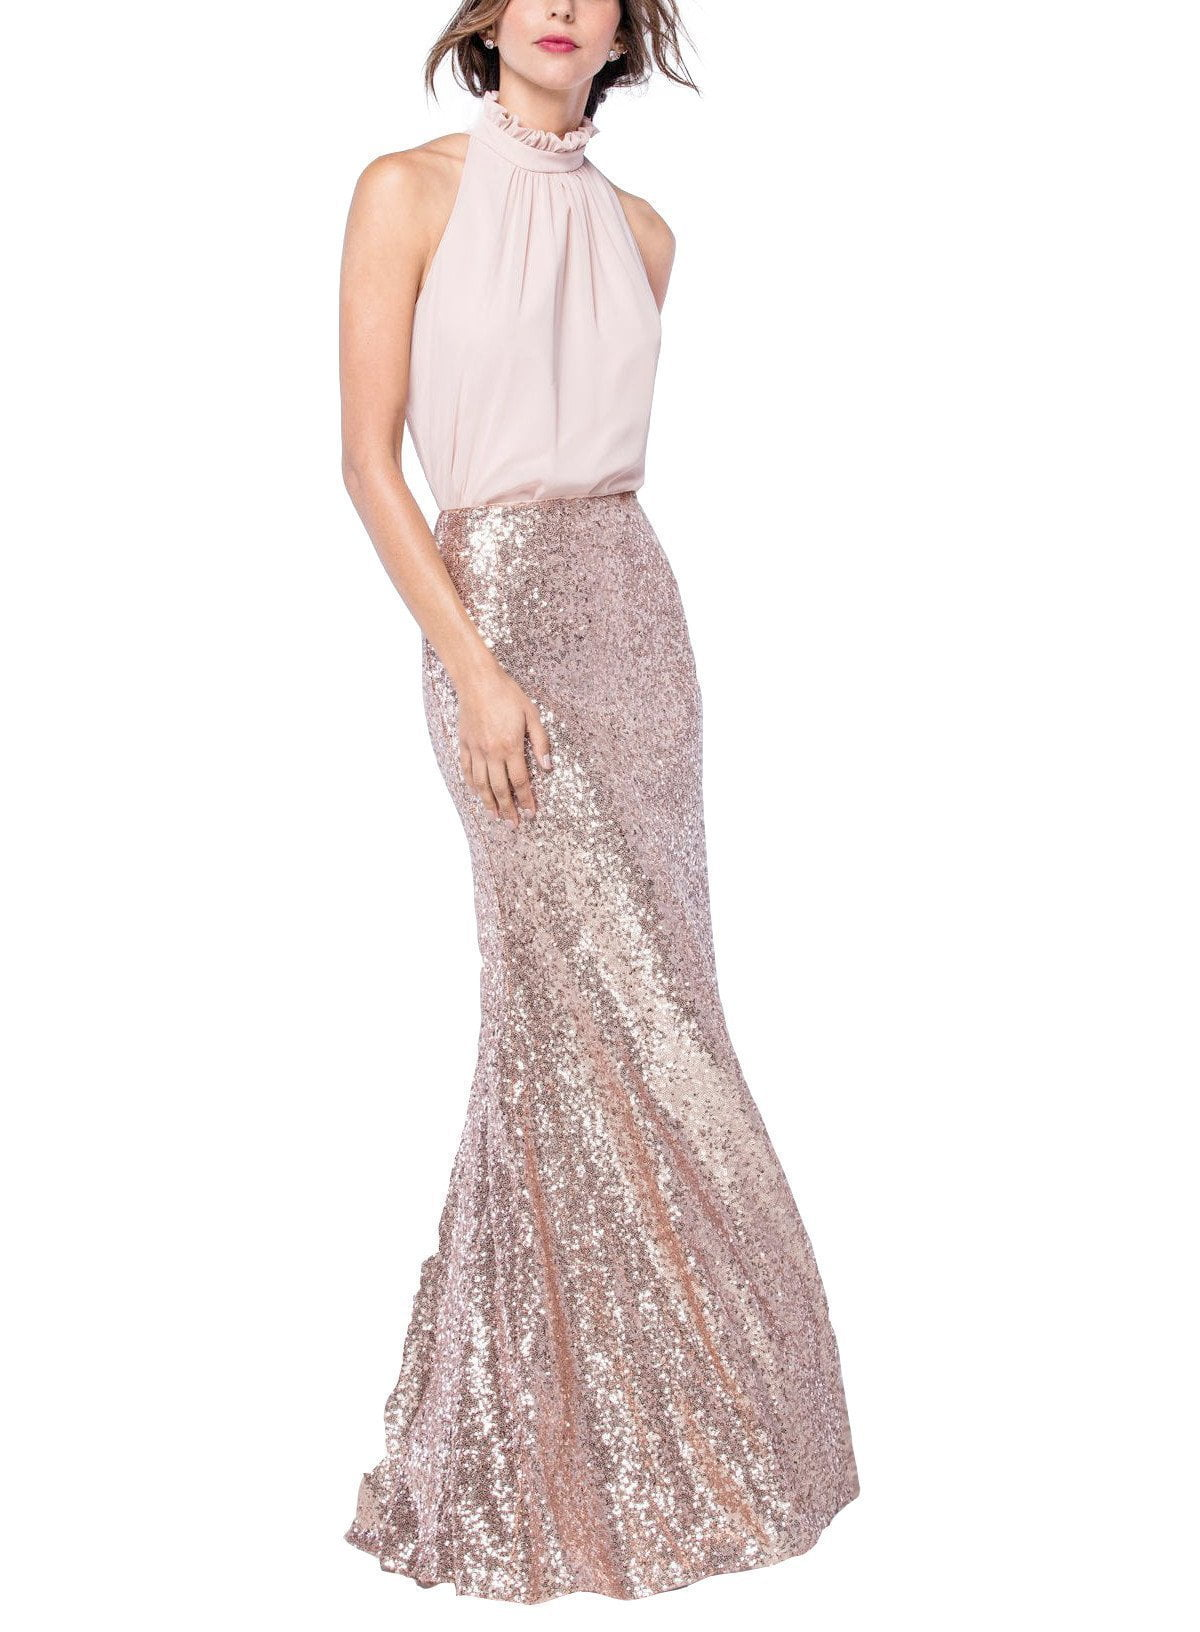 Watters Celine Skirt in Rose Gold Sequin